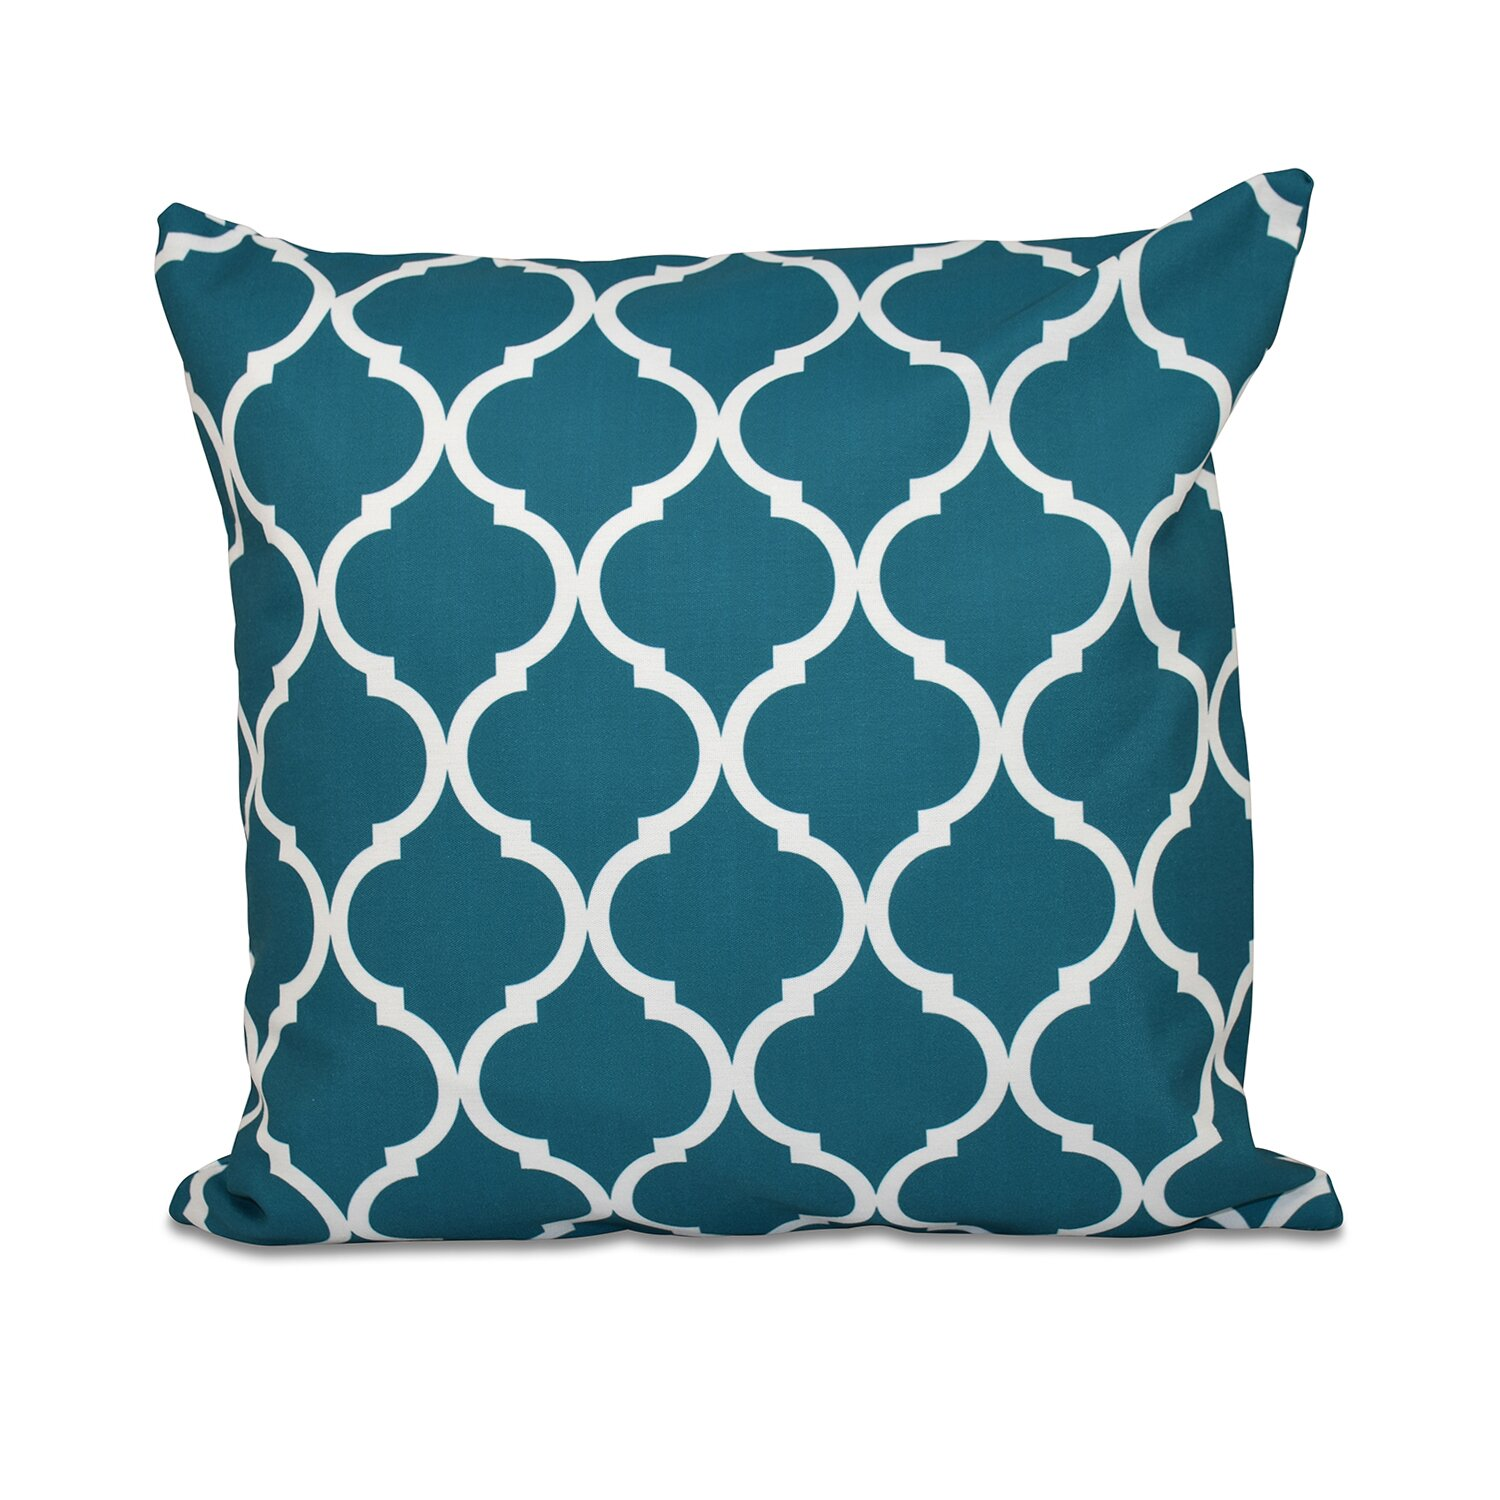 Throw Pillow In French : e by design French Quarter Geometric Print Throw Pillow & Reviews Wayfair